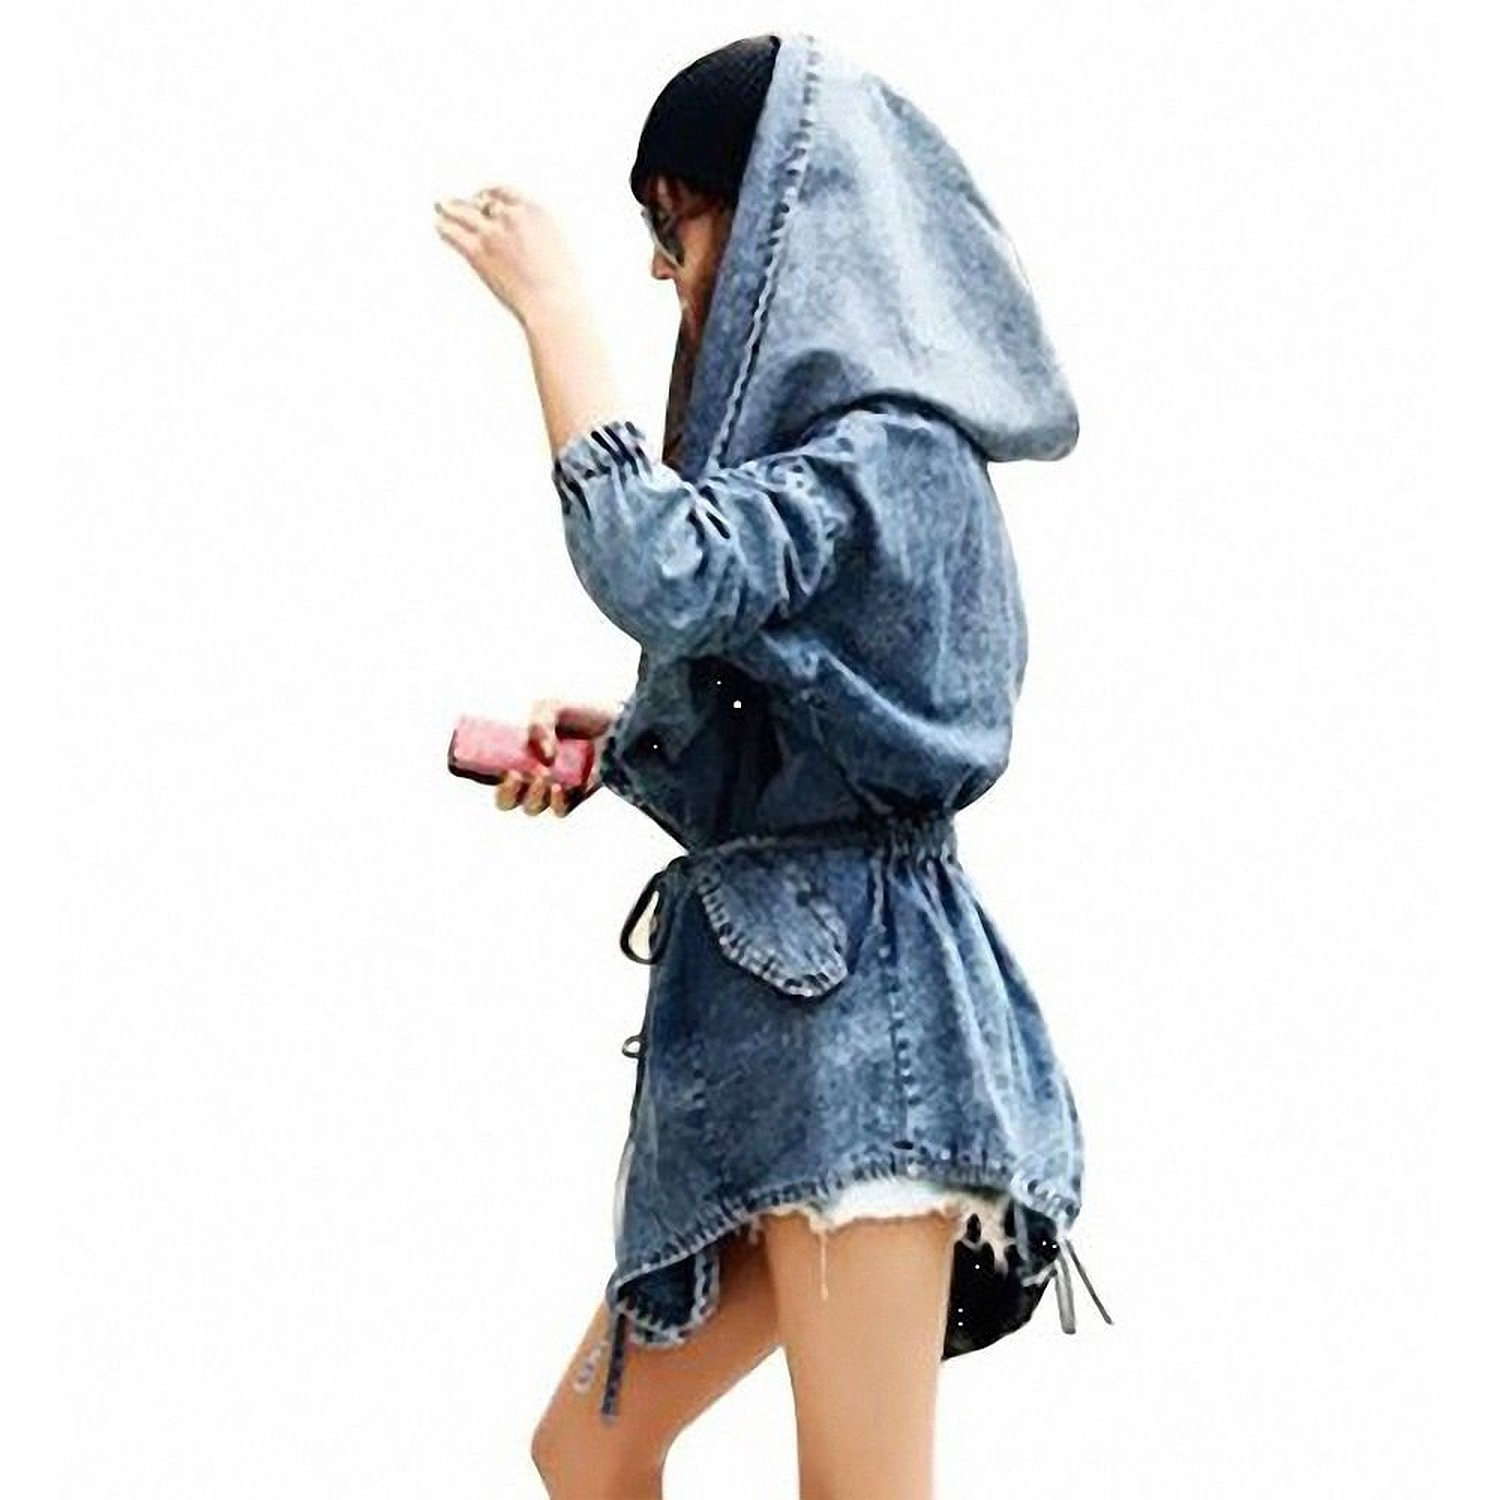 DJT Women's Denim Trench Coat Hoodie Outerwear Hooded Jeans Jacket at Amazon Women's Coats Shop